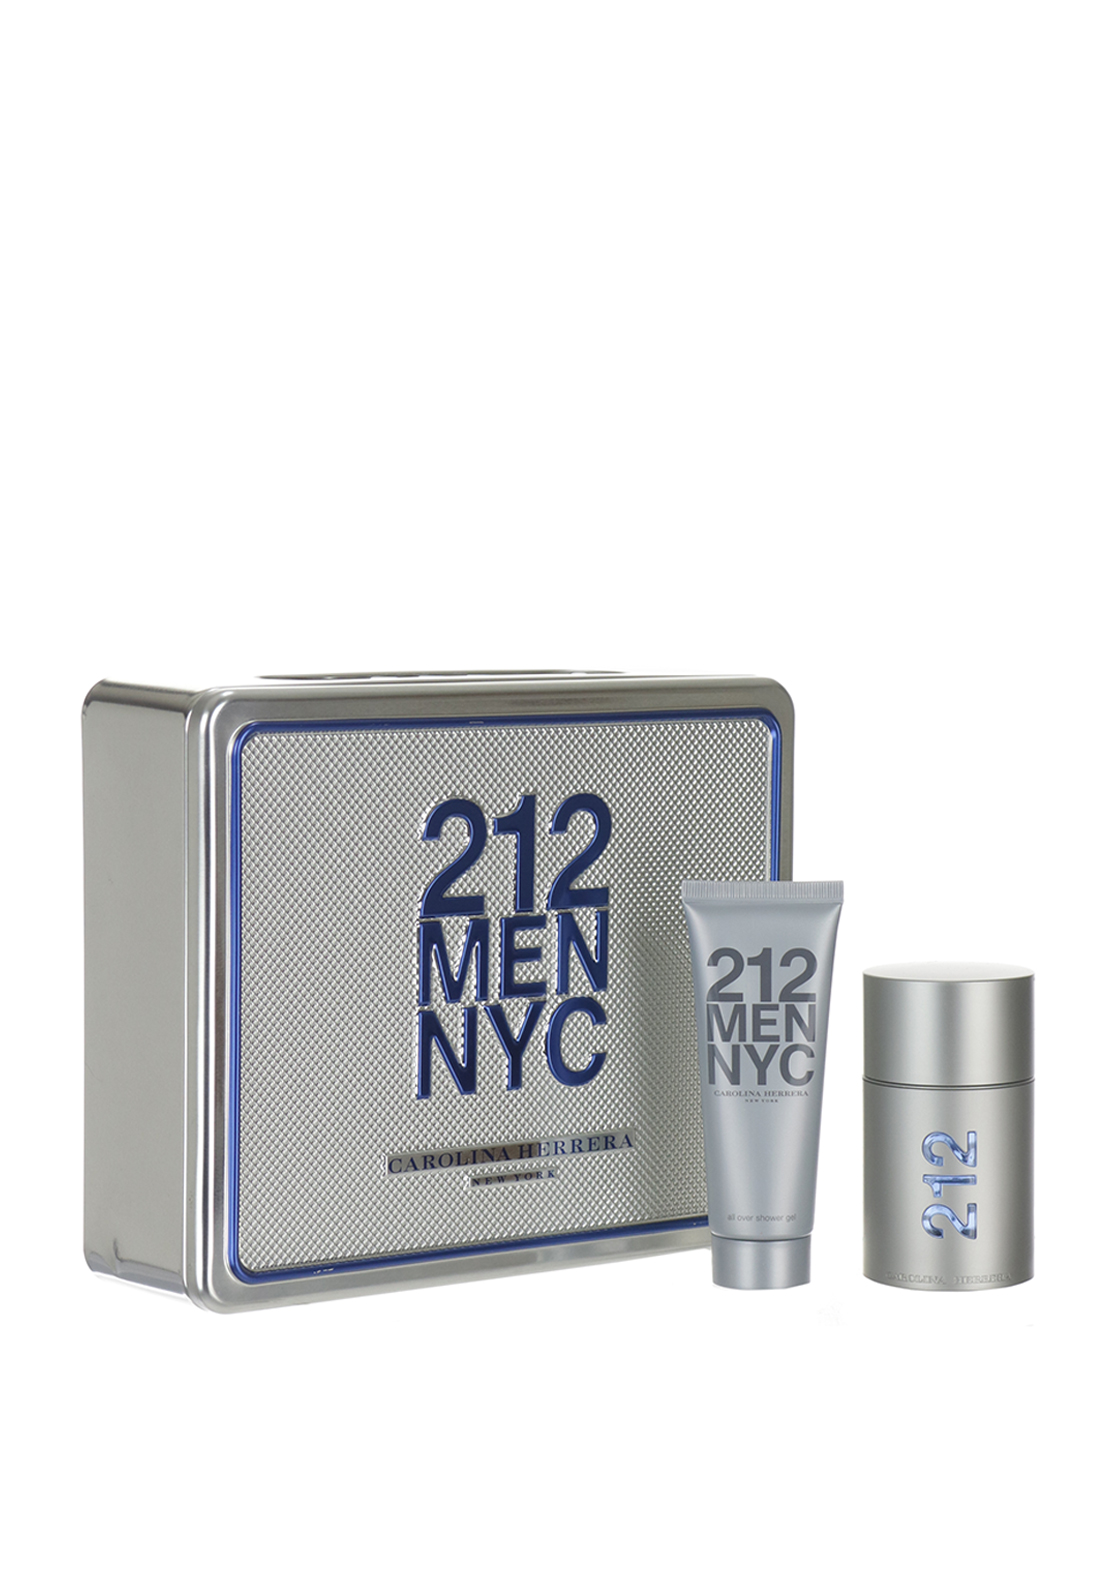 212 Men NYC, Carolina Herrera Gift Set for Men 50ml